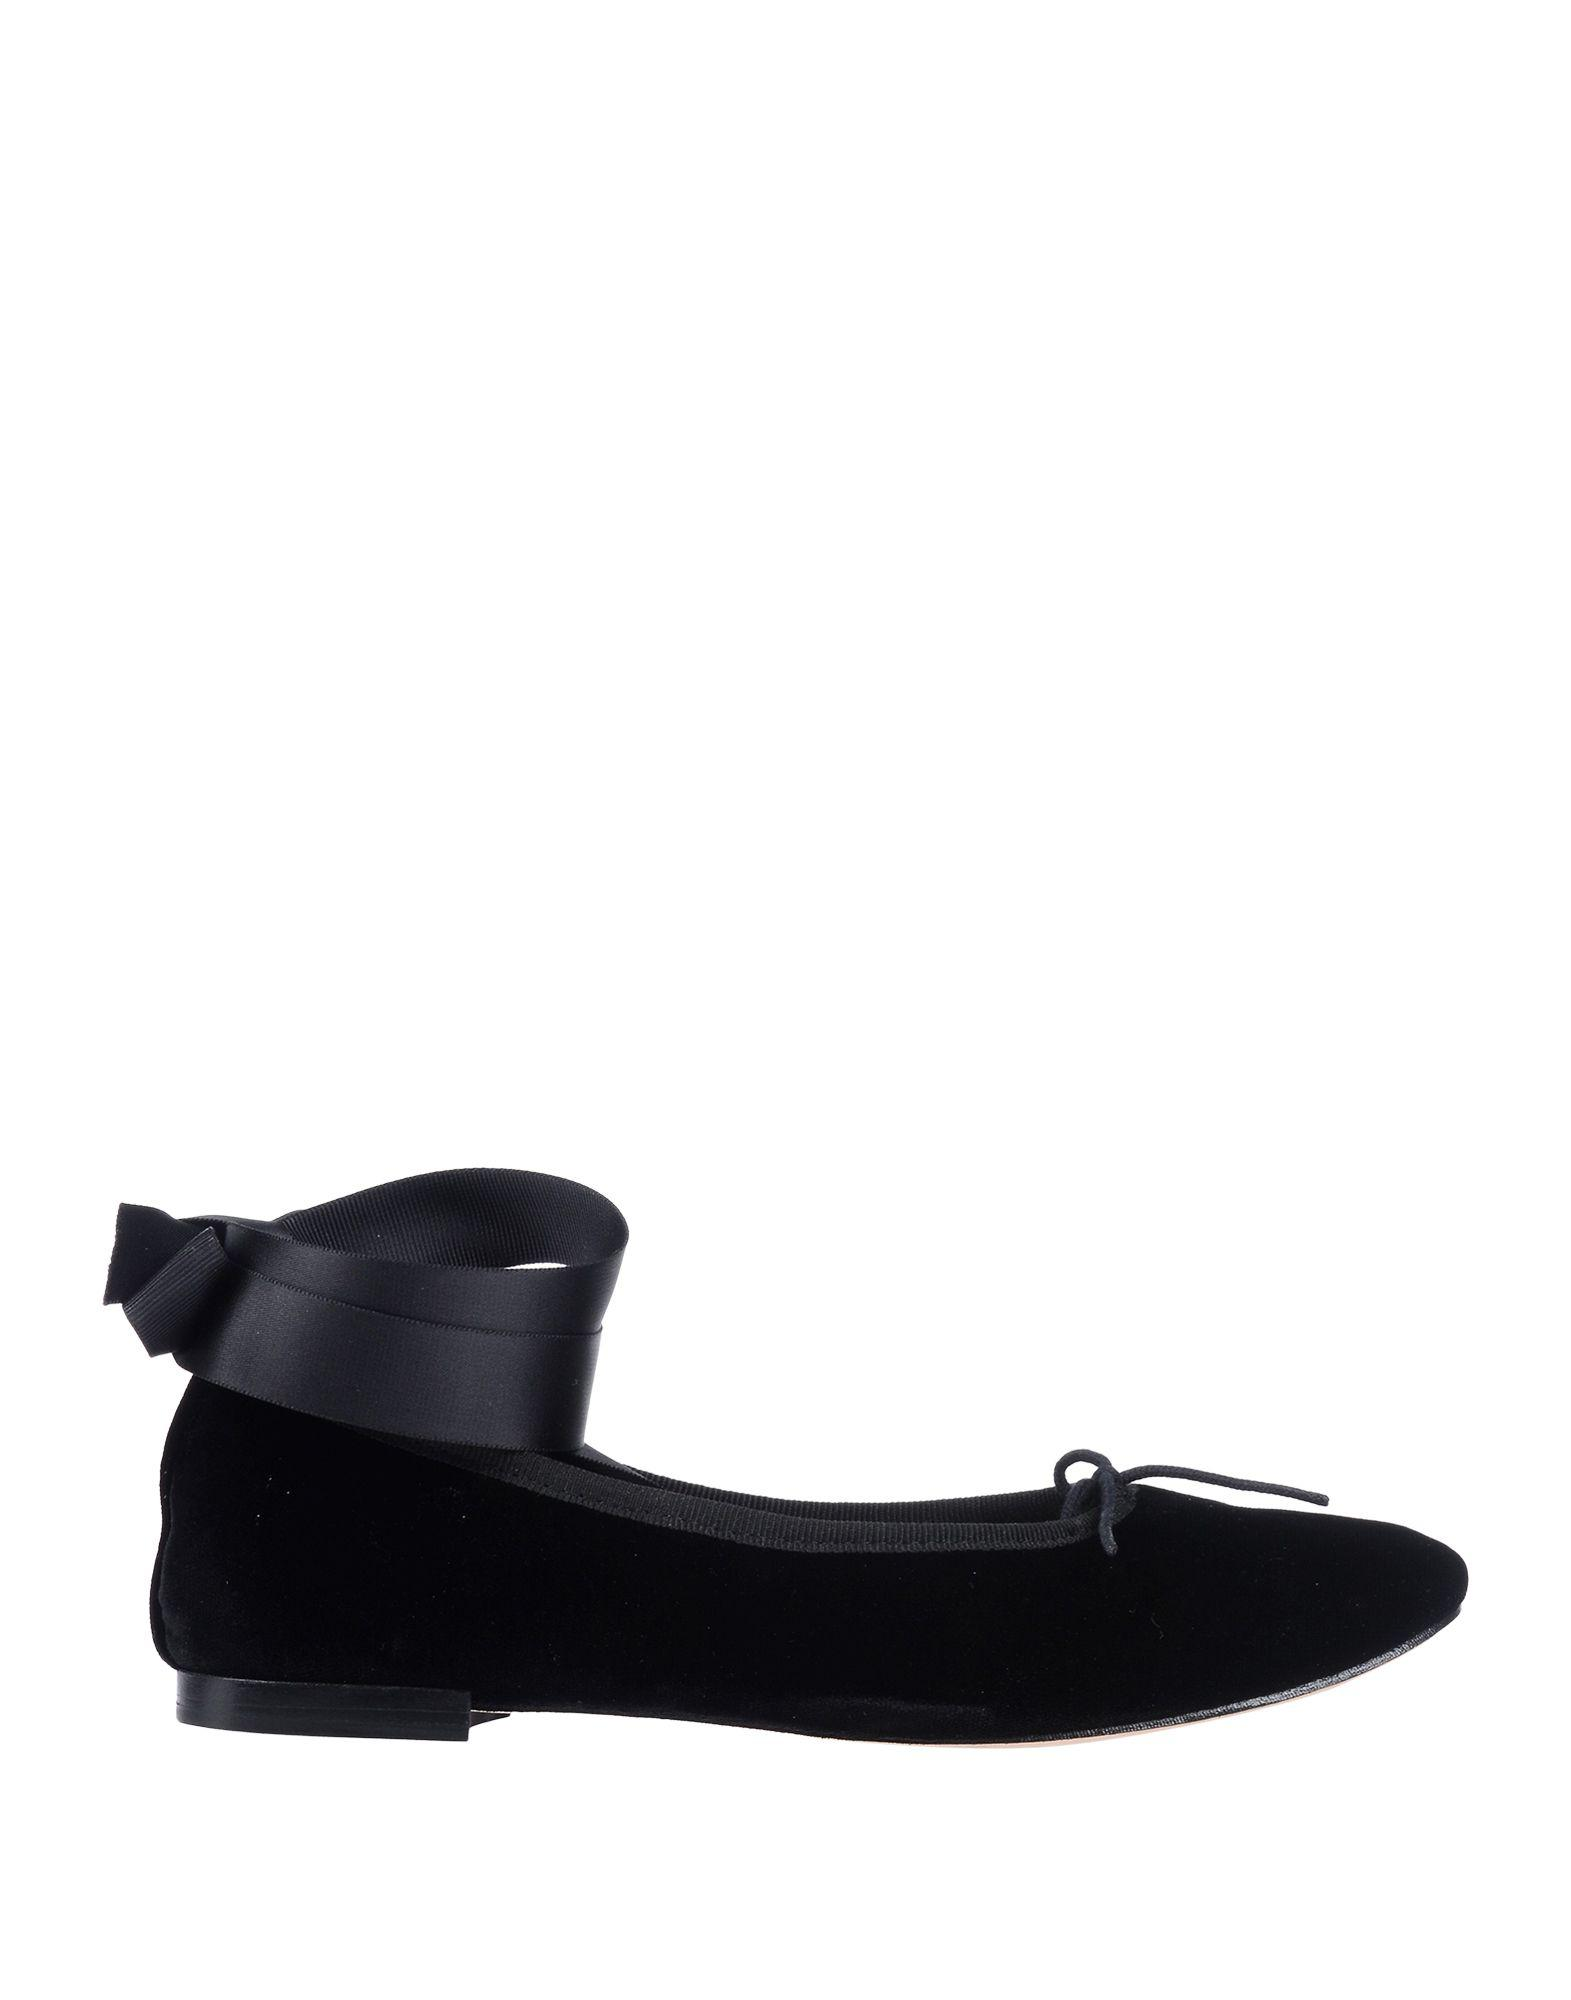 6118b927c333 Repetto Ballet Flats in Black - Lyst